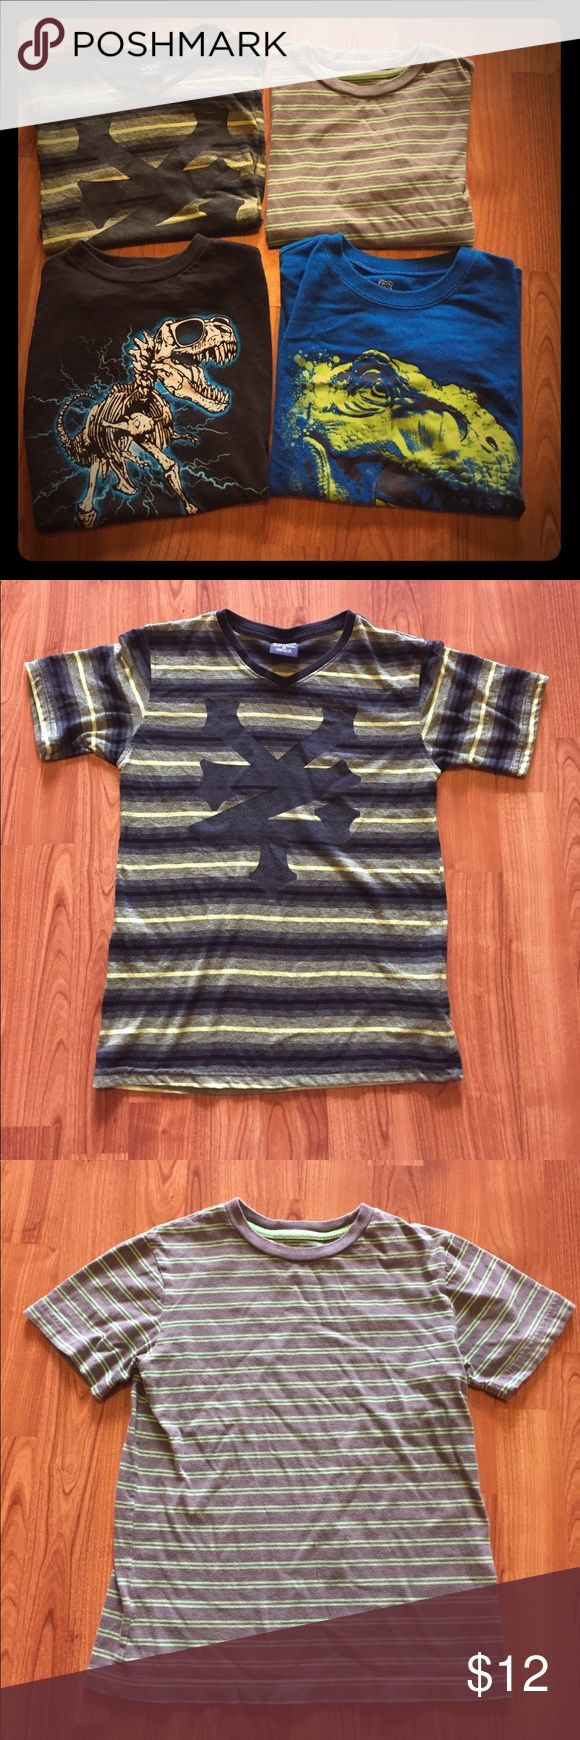 Bundle of Four Boys Shirts Four boys t-shirts.  Zoo York shirt in first pic has some pilling.  All others in great used condition. Smoke free home. Shirts & Tops